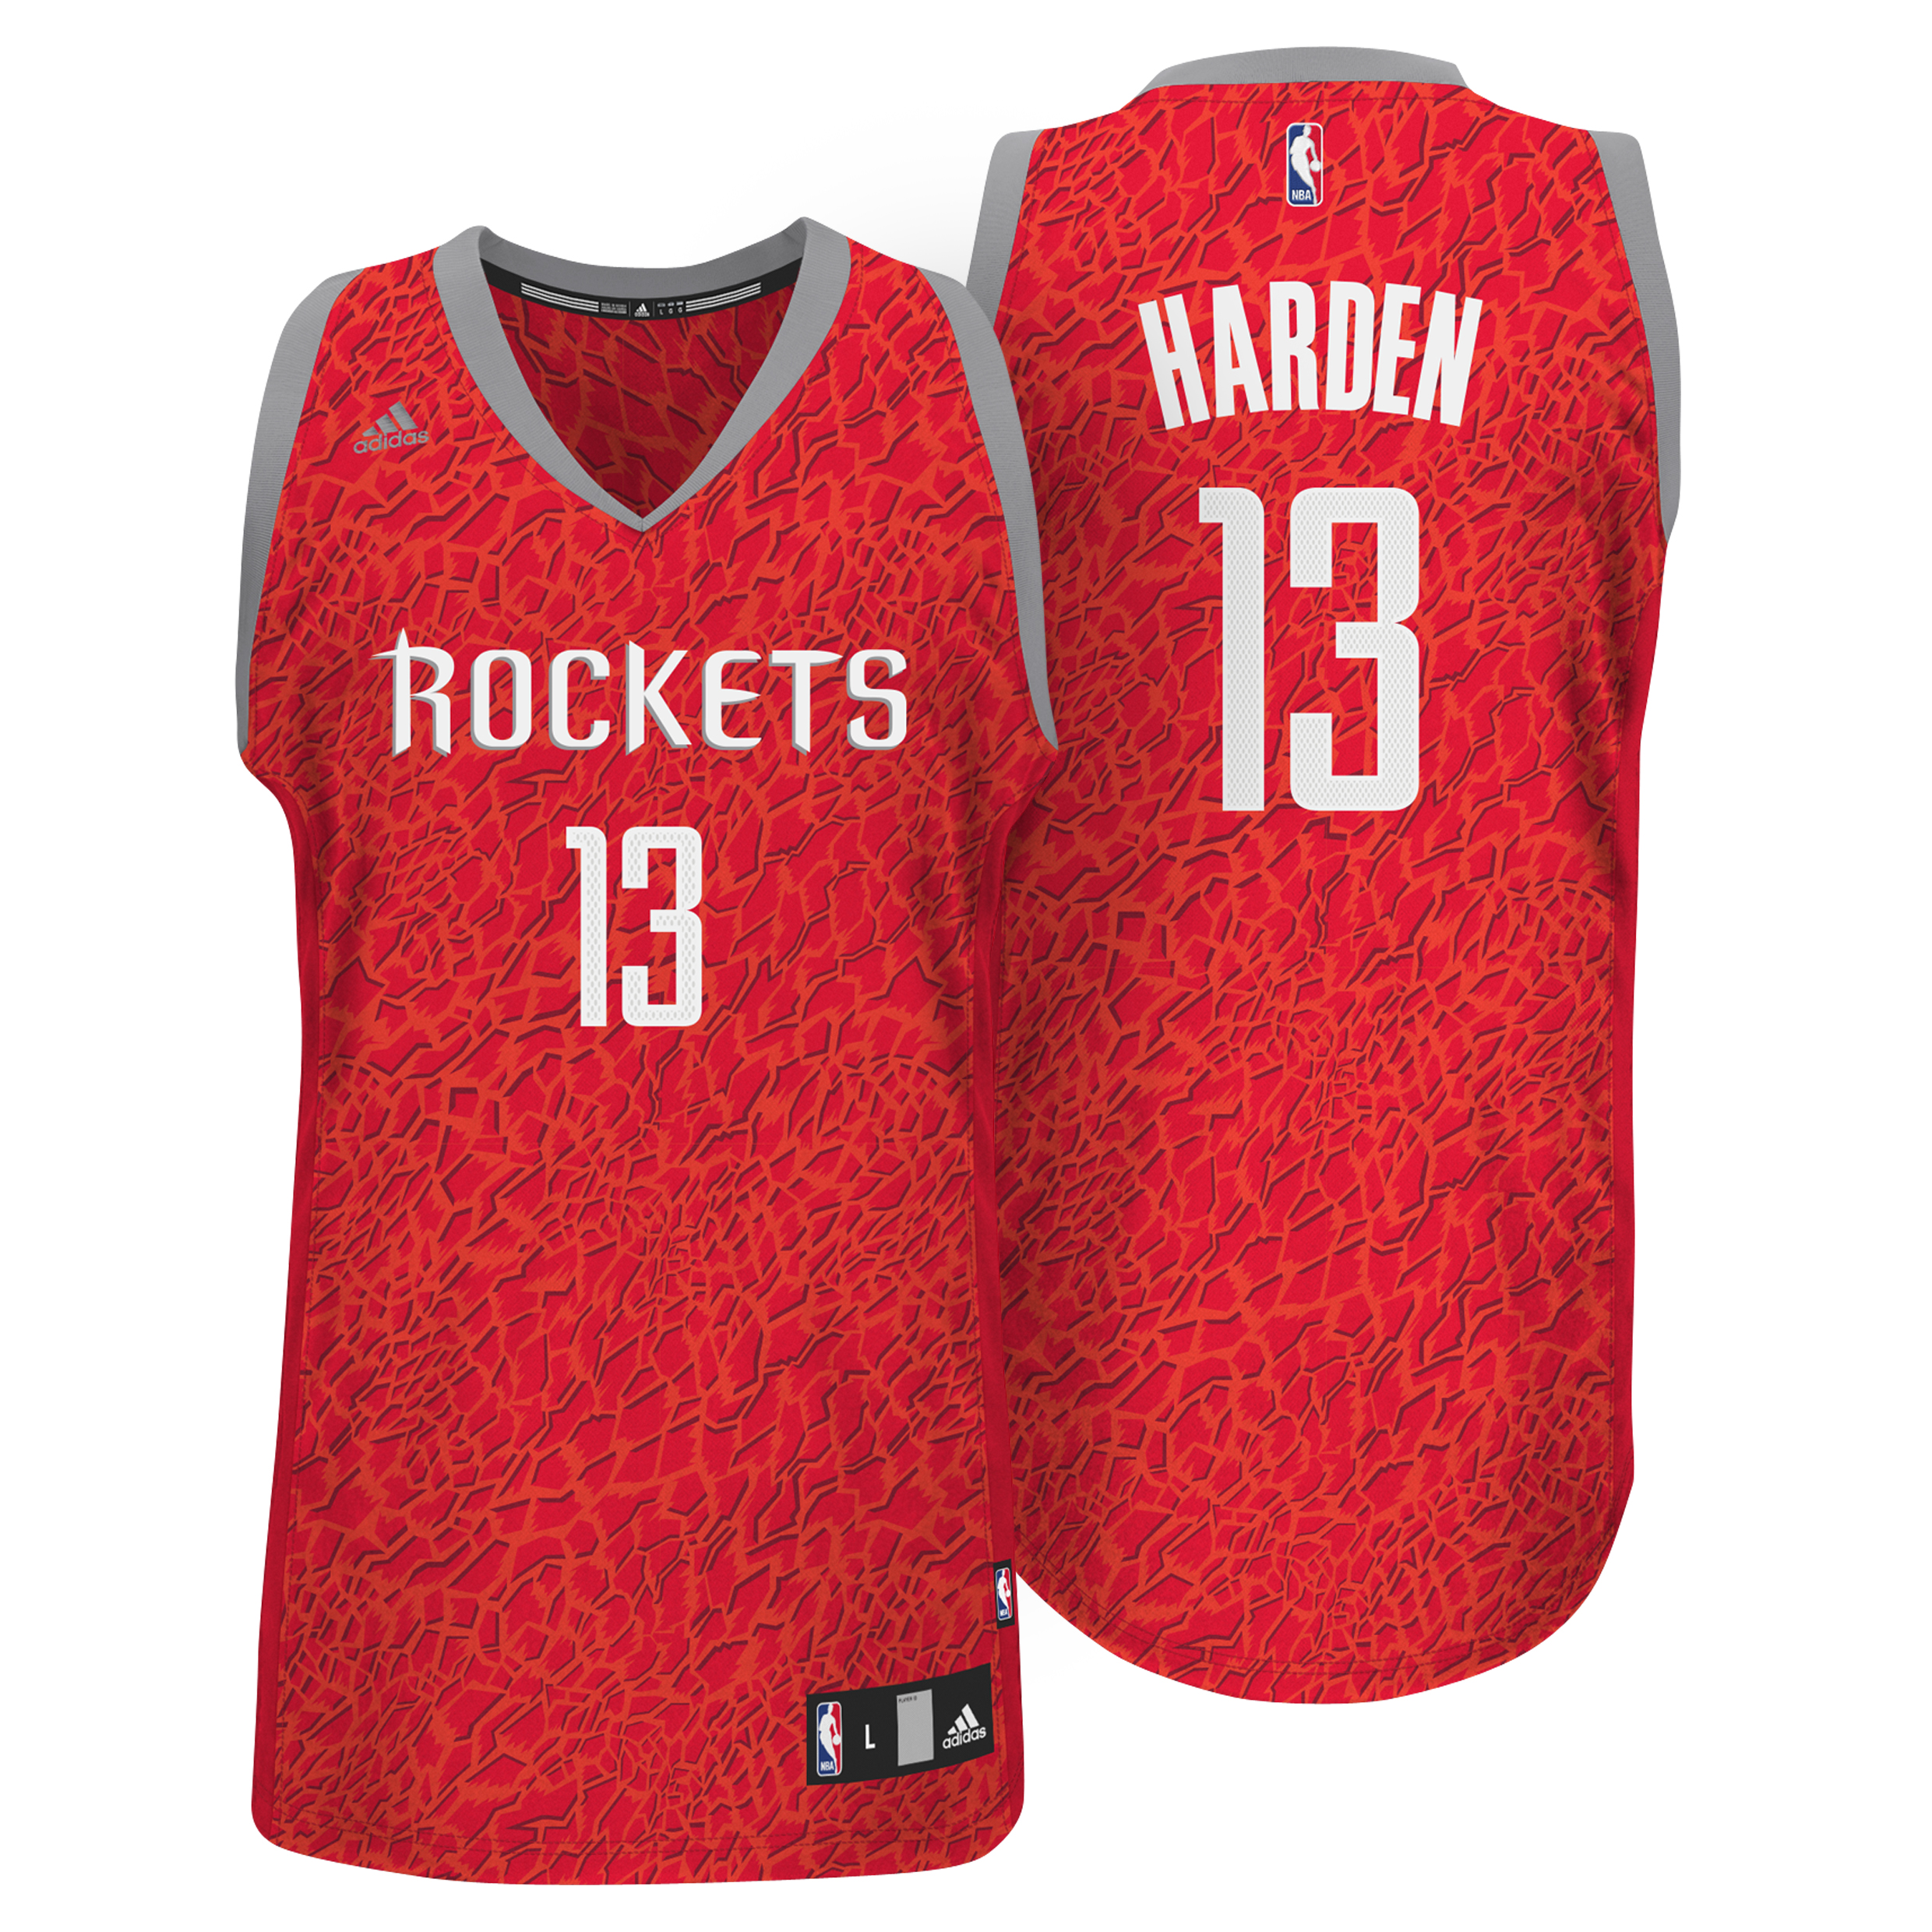 Houston Rockets Crazy Light Swingman Jersey - James Harden - Mens